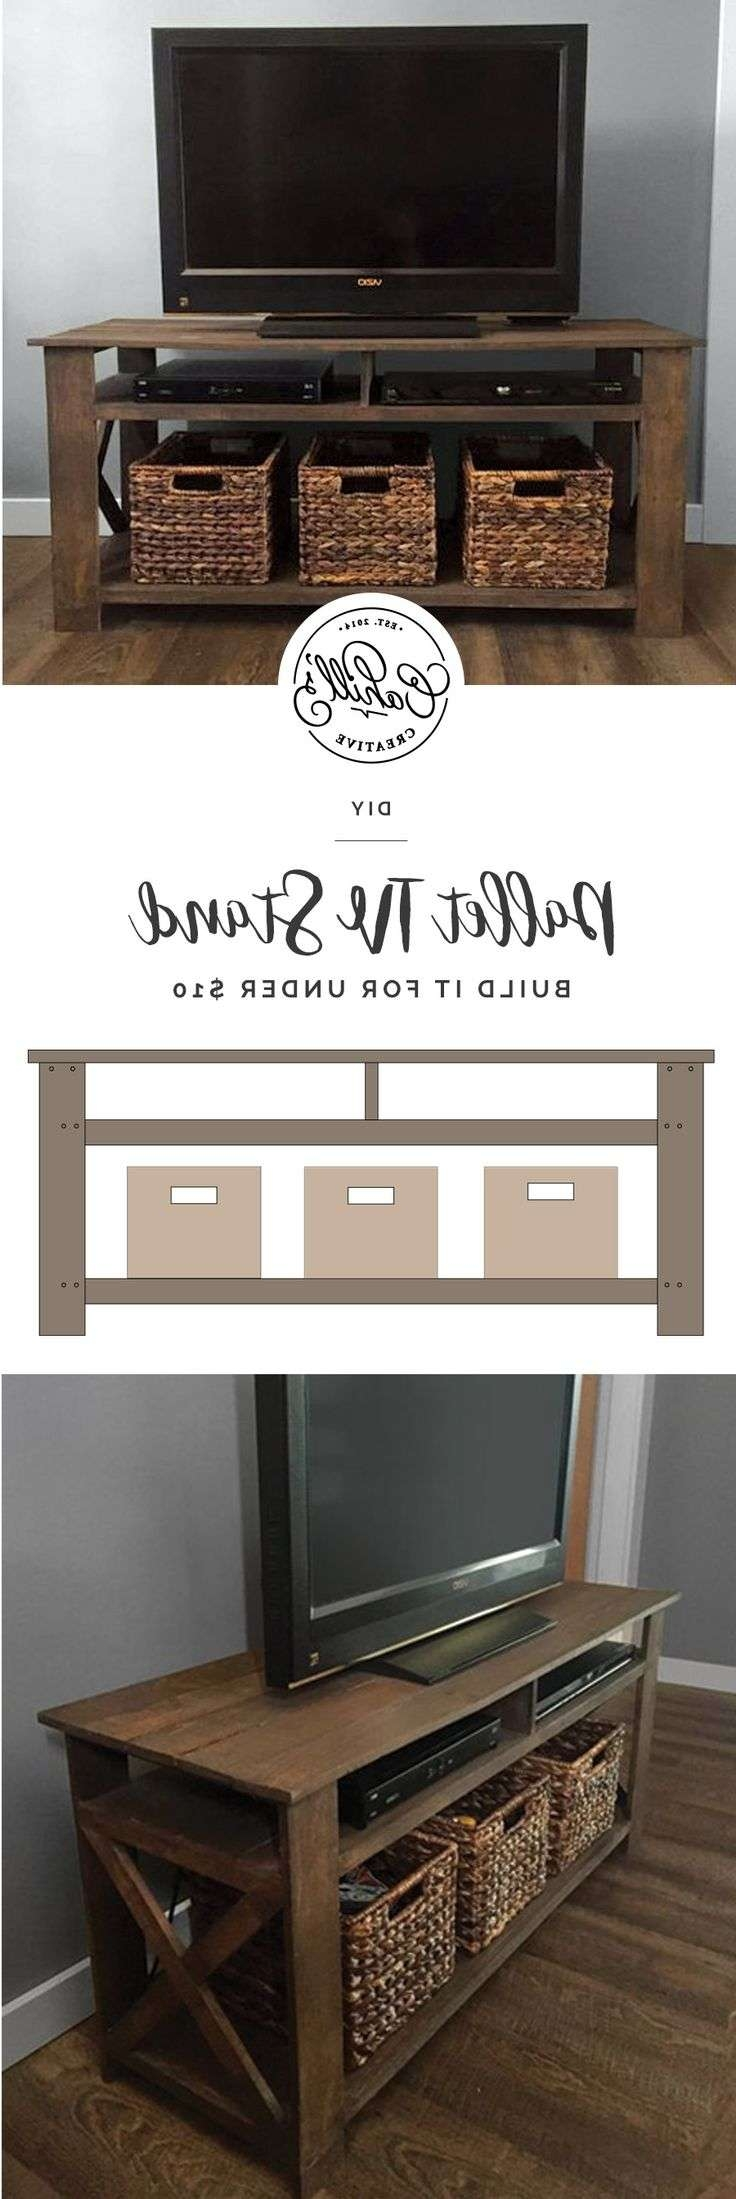 Best 25+ Tv Stands Ideas On Pinterest | Diy Tv Stand, Tv Stand Inside Tv Stands 38 Inches Wide (View 4 of 15)